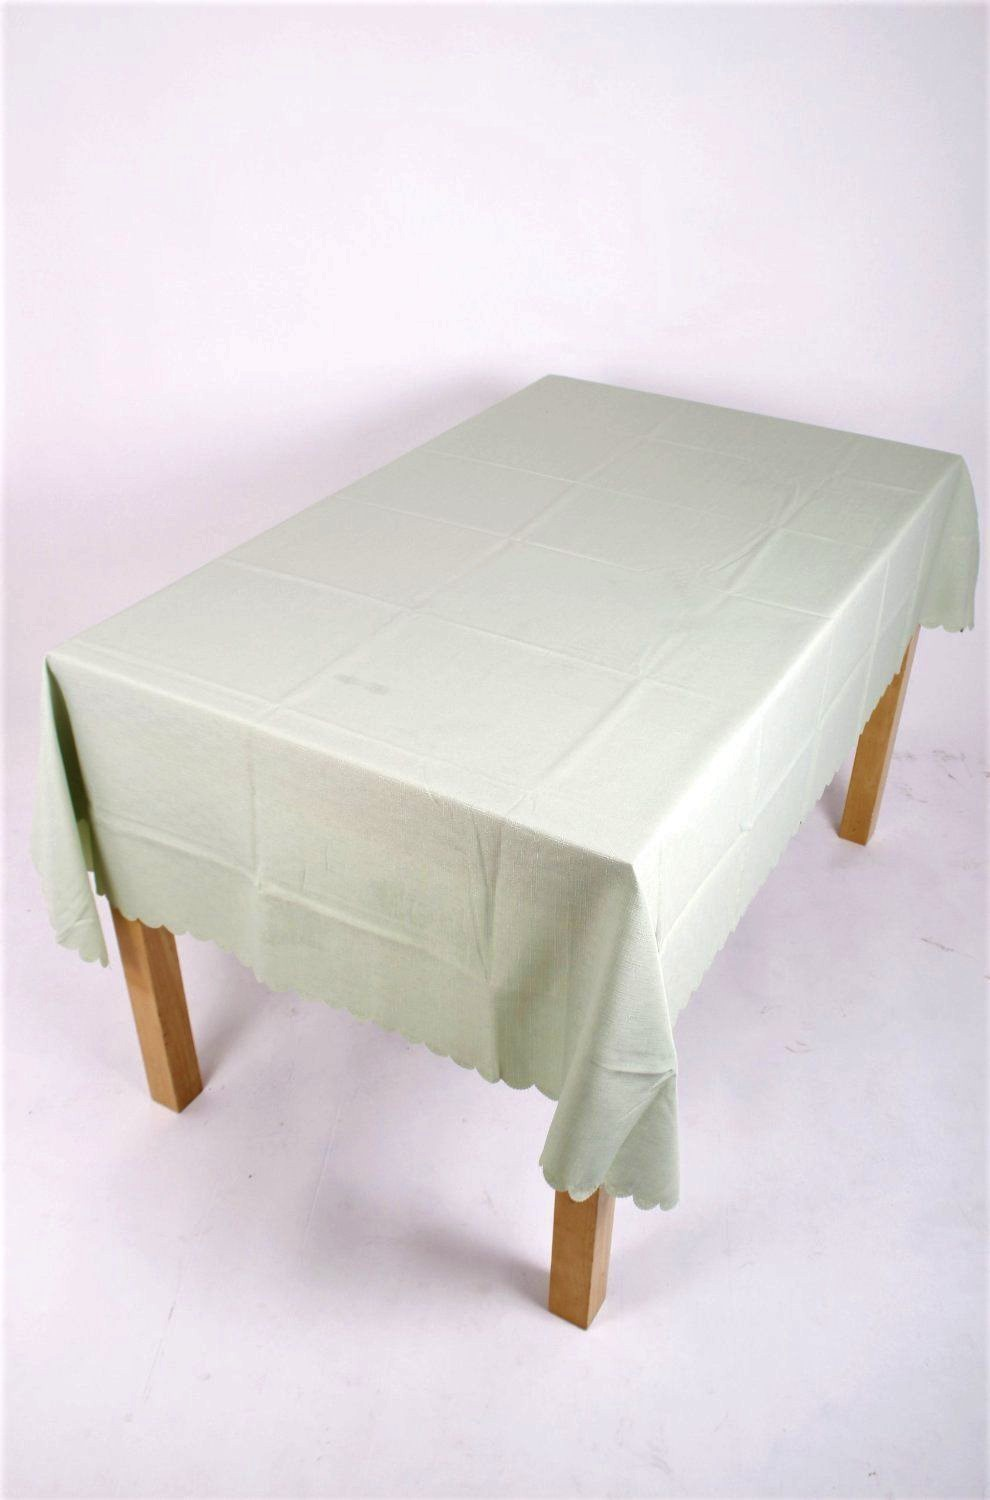 Shell Tablecloth Meadow Green 137x178cm Oval